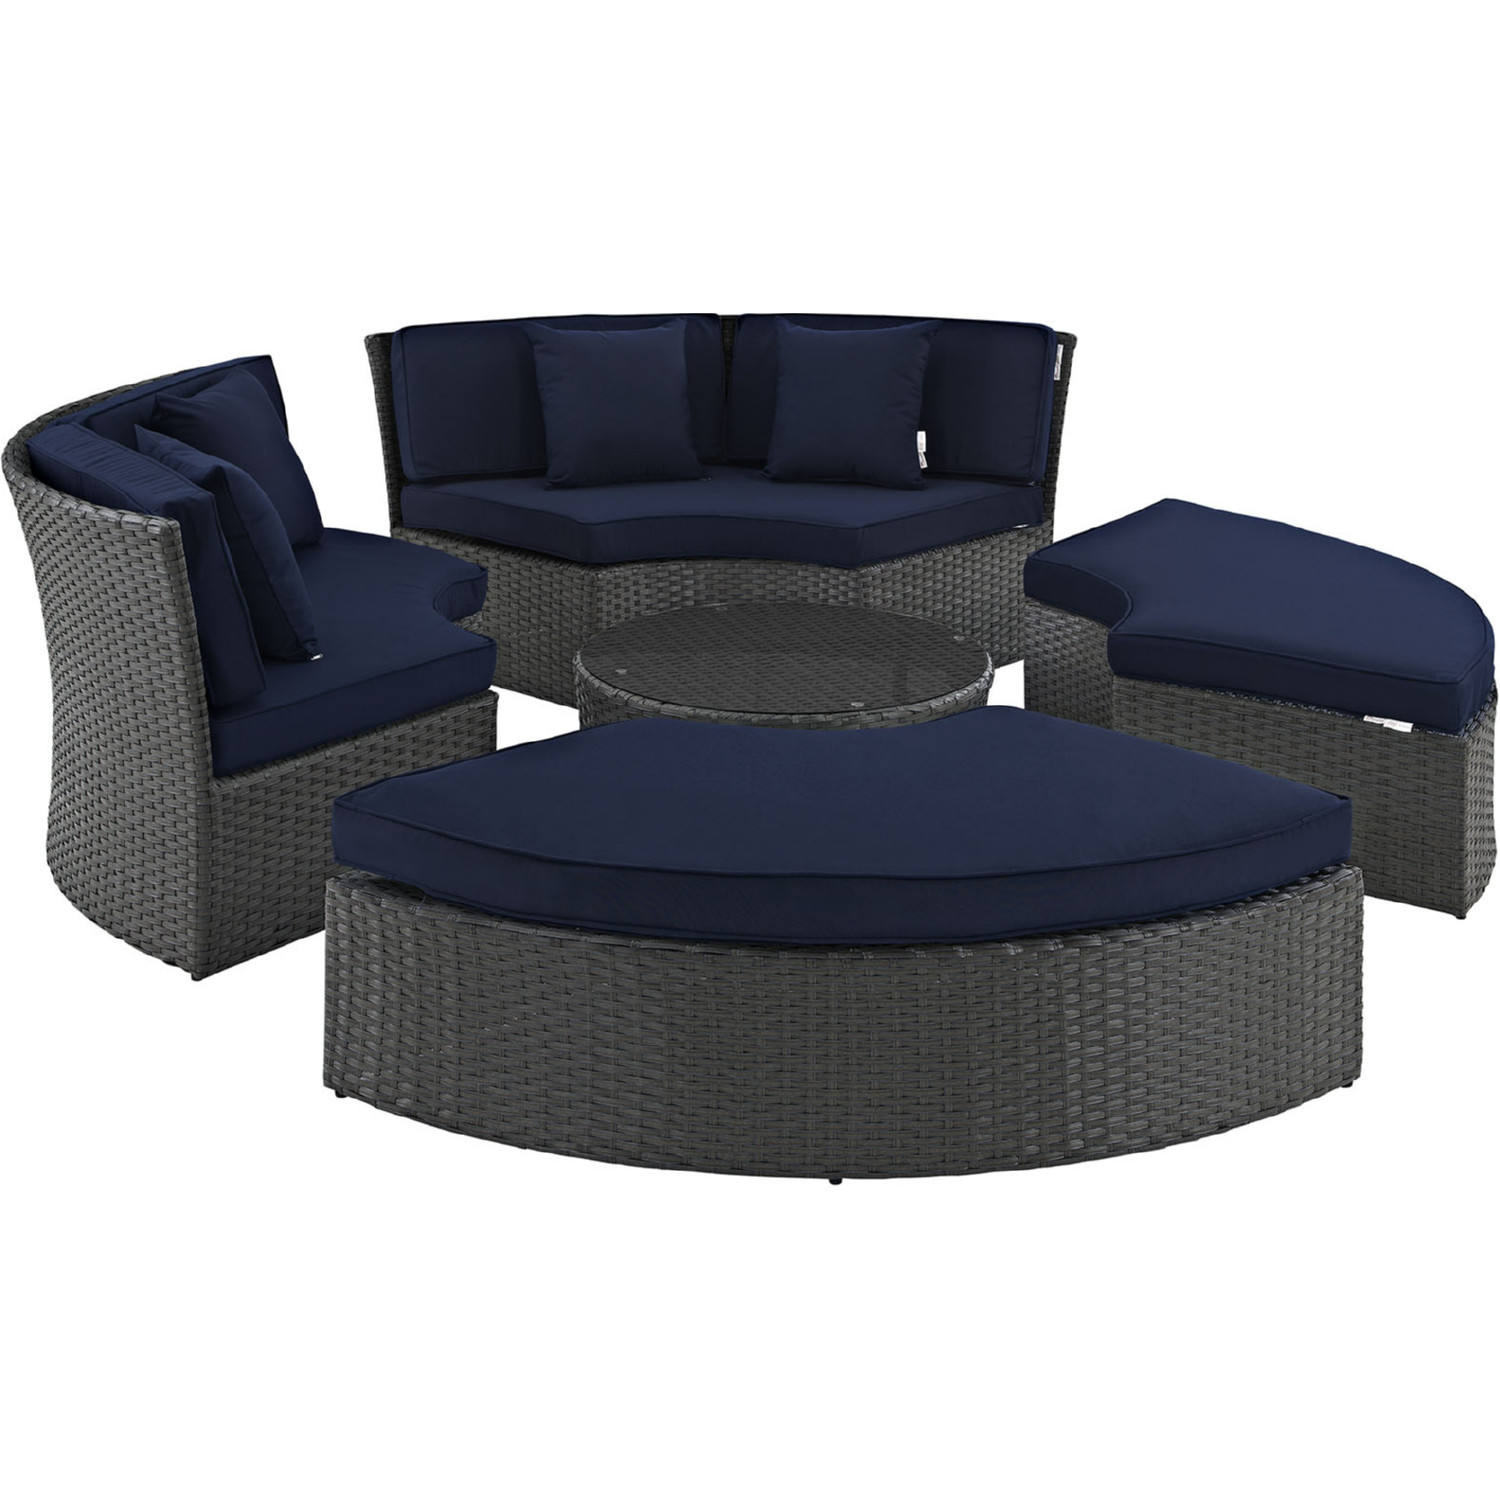 Modway EEI-1984-CHC-NAV-SET Sojourn Outdoor Patio Daybed in Poly ...